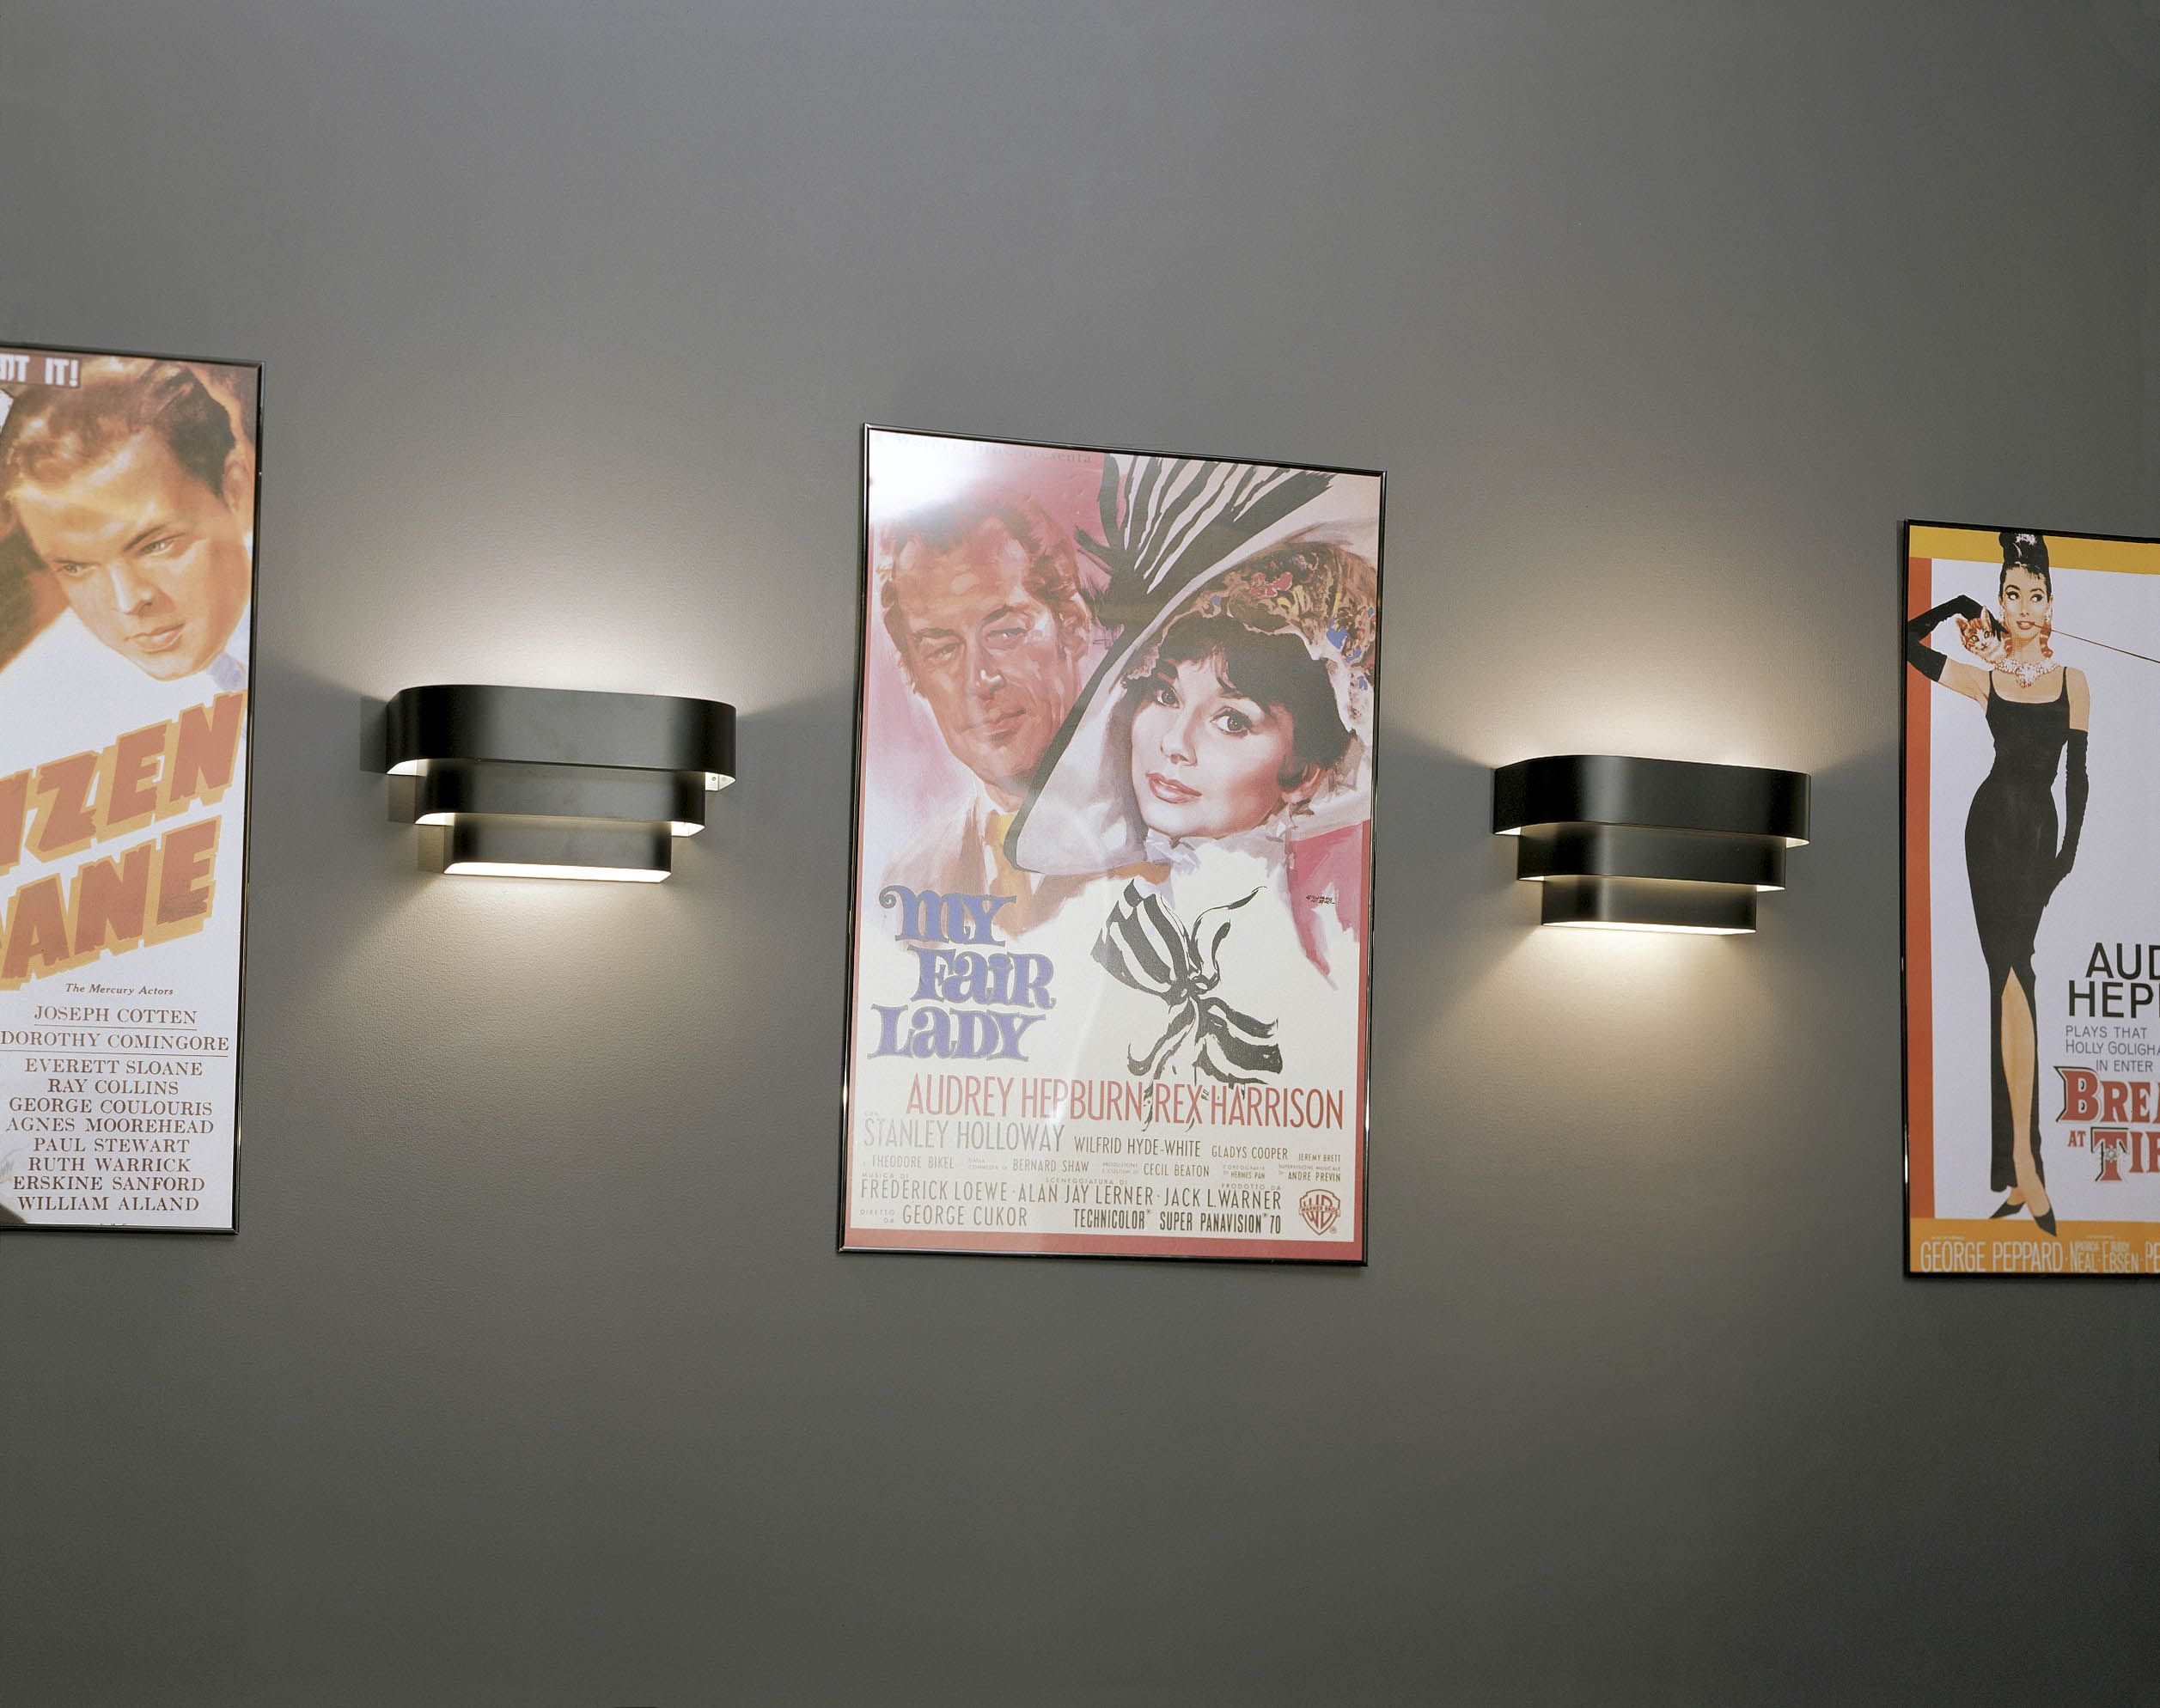 Wall Sconces Theater Lighting : Progress Black Stepped Sconce Wall Light Art deco style